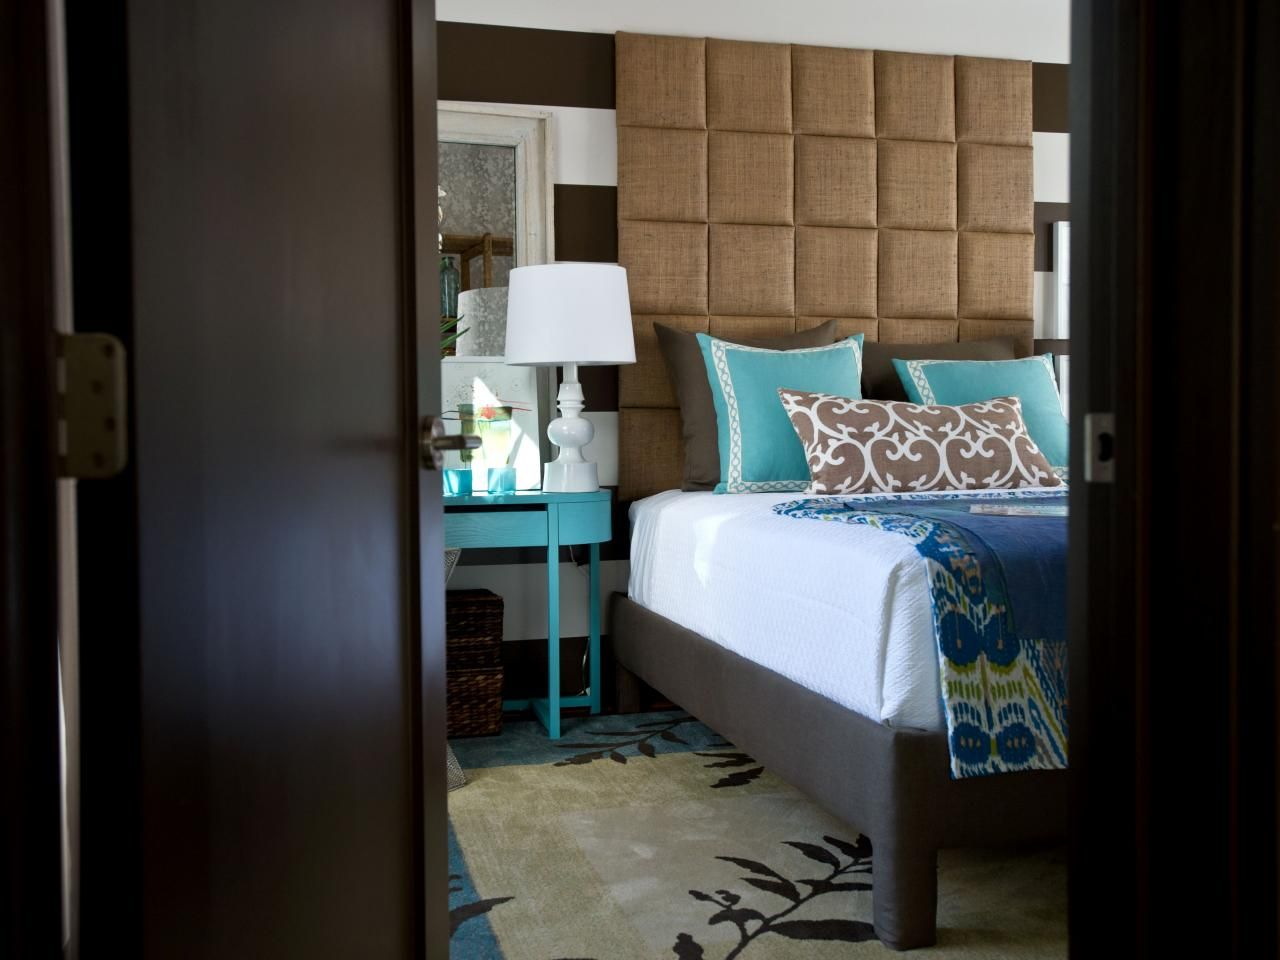 Master bedroom headboard ideas  Green Home  Headboard Project  Floral rug Blue pillows and Hgtv